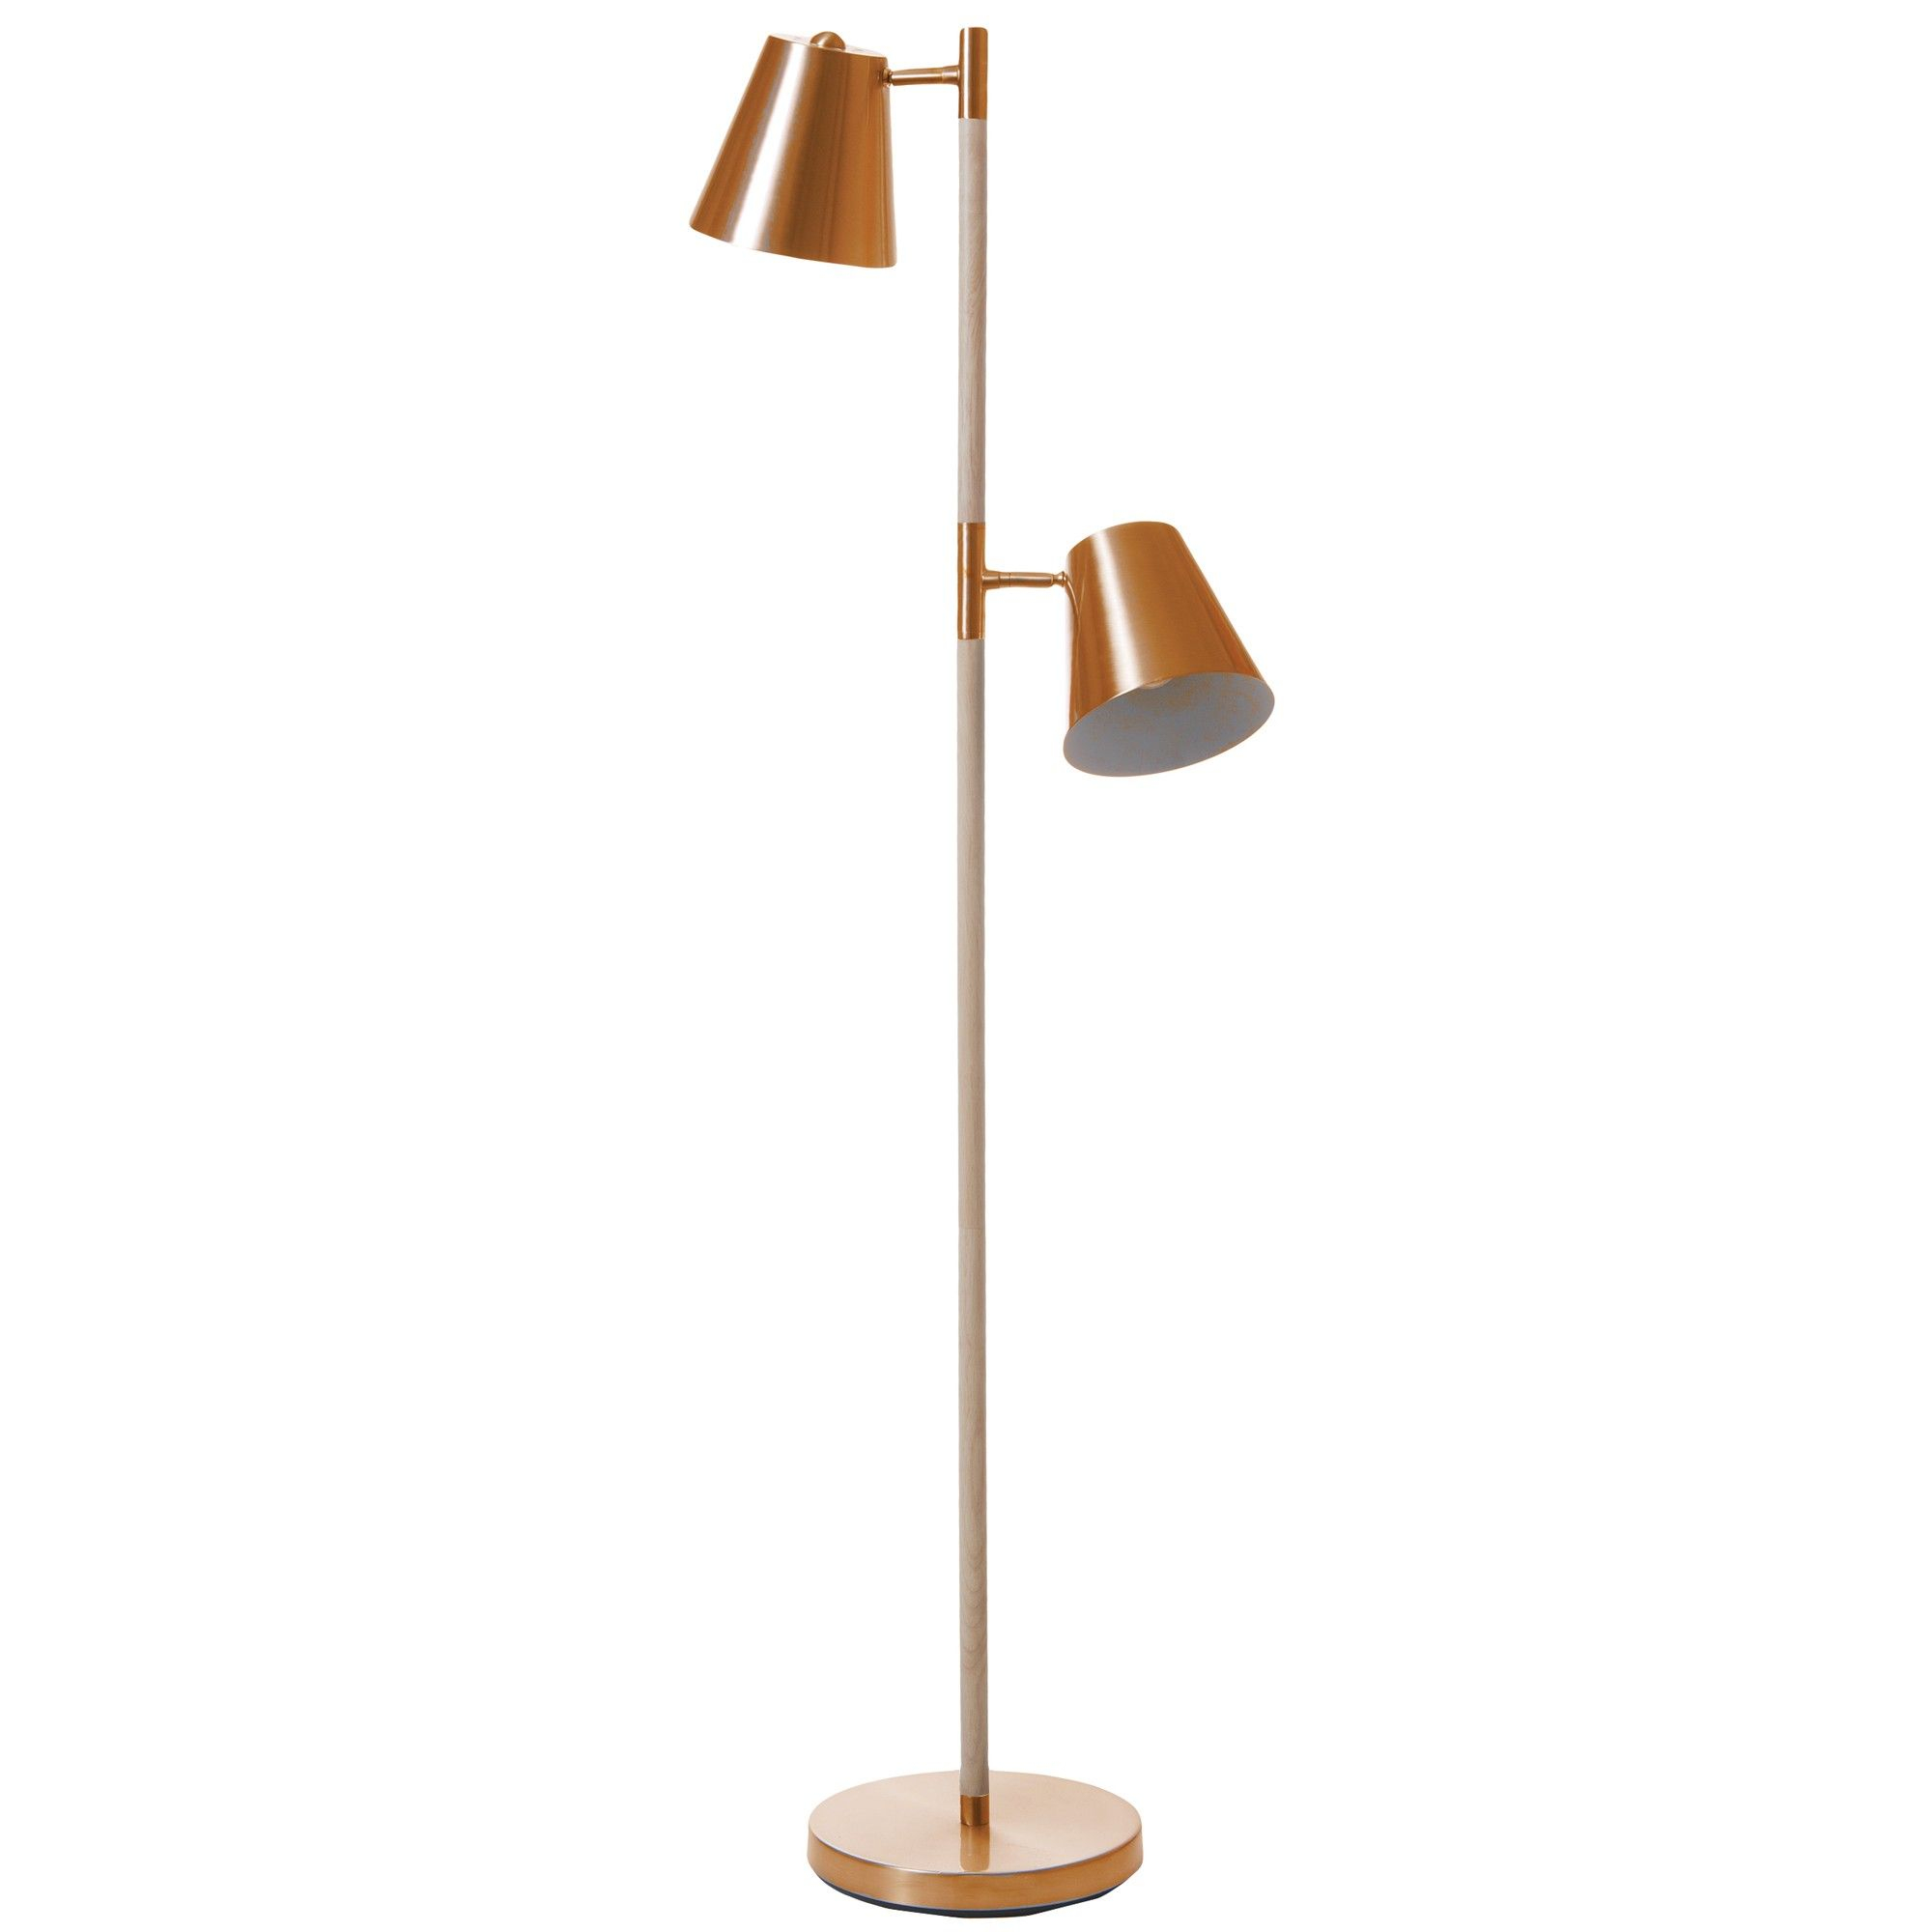 Rubi Floor Lamp Copper Howkapow Myhowkapow Howkapow within dimensions 2000 X 2000